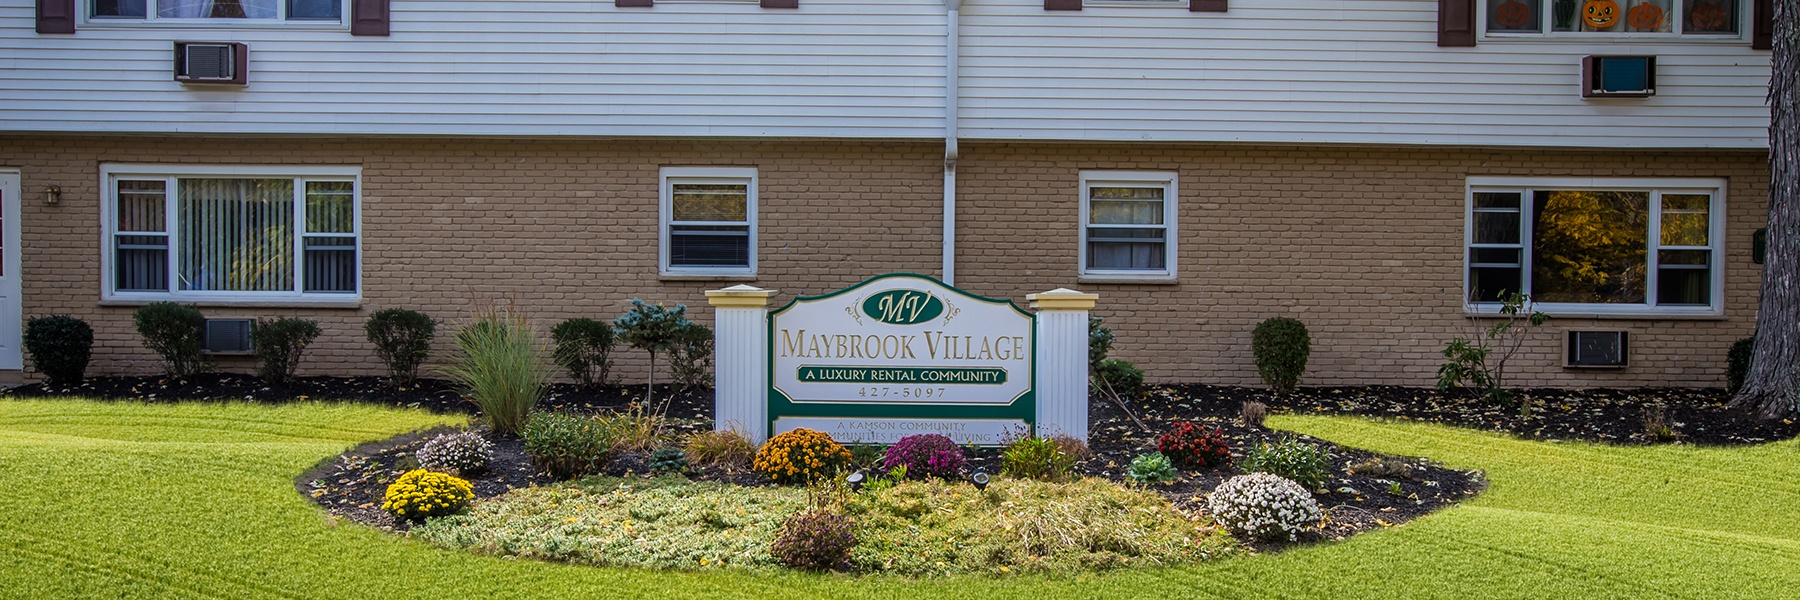 Maybrook Village Apartments For Rent in Maybrook, NY Welcome